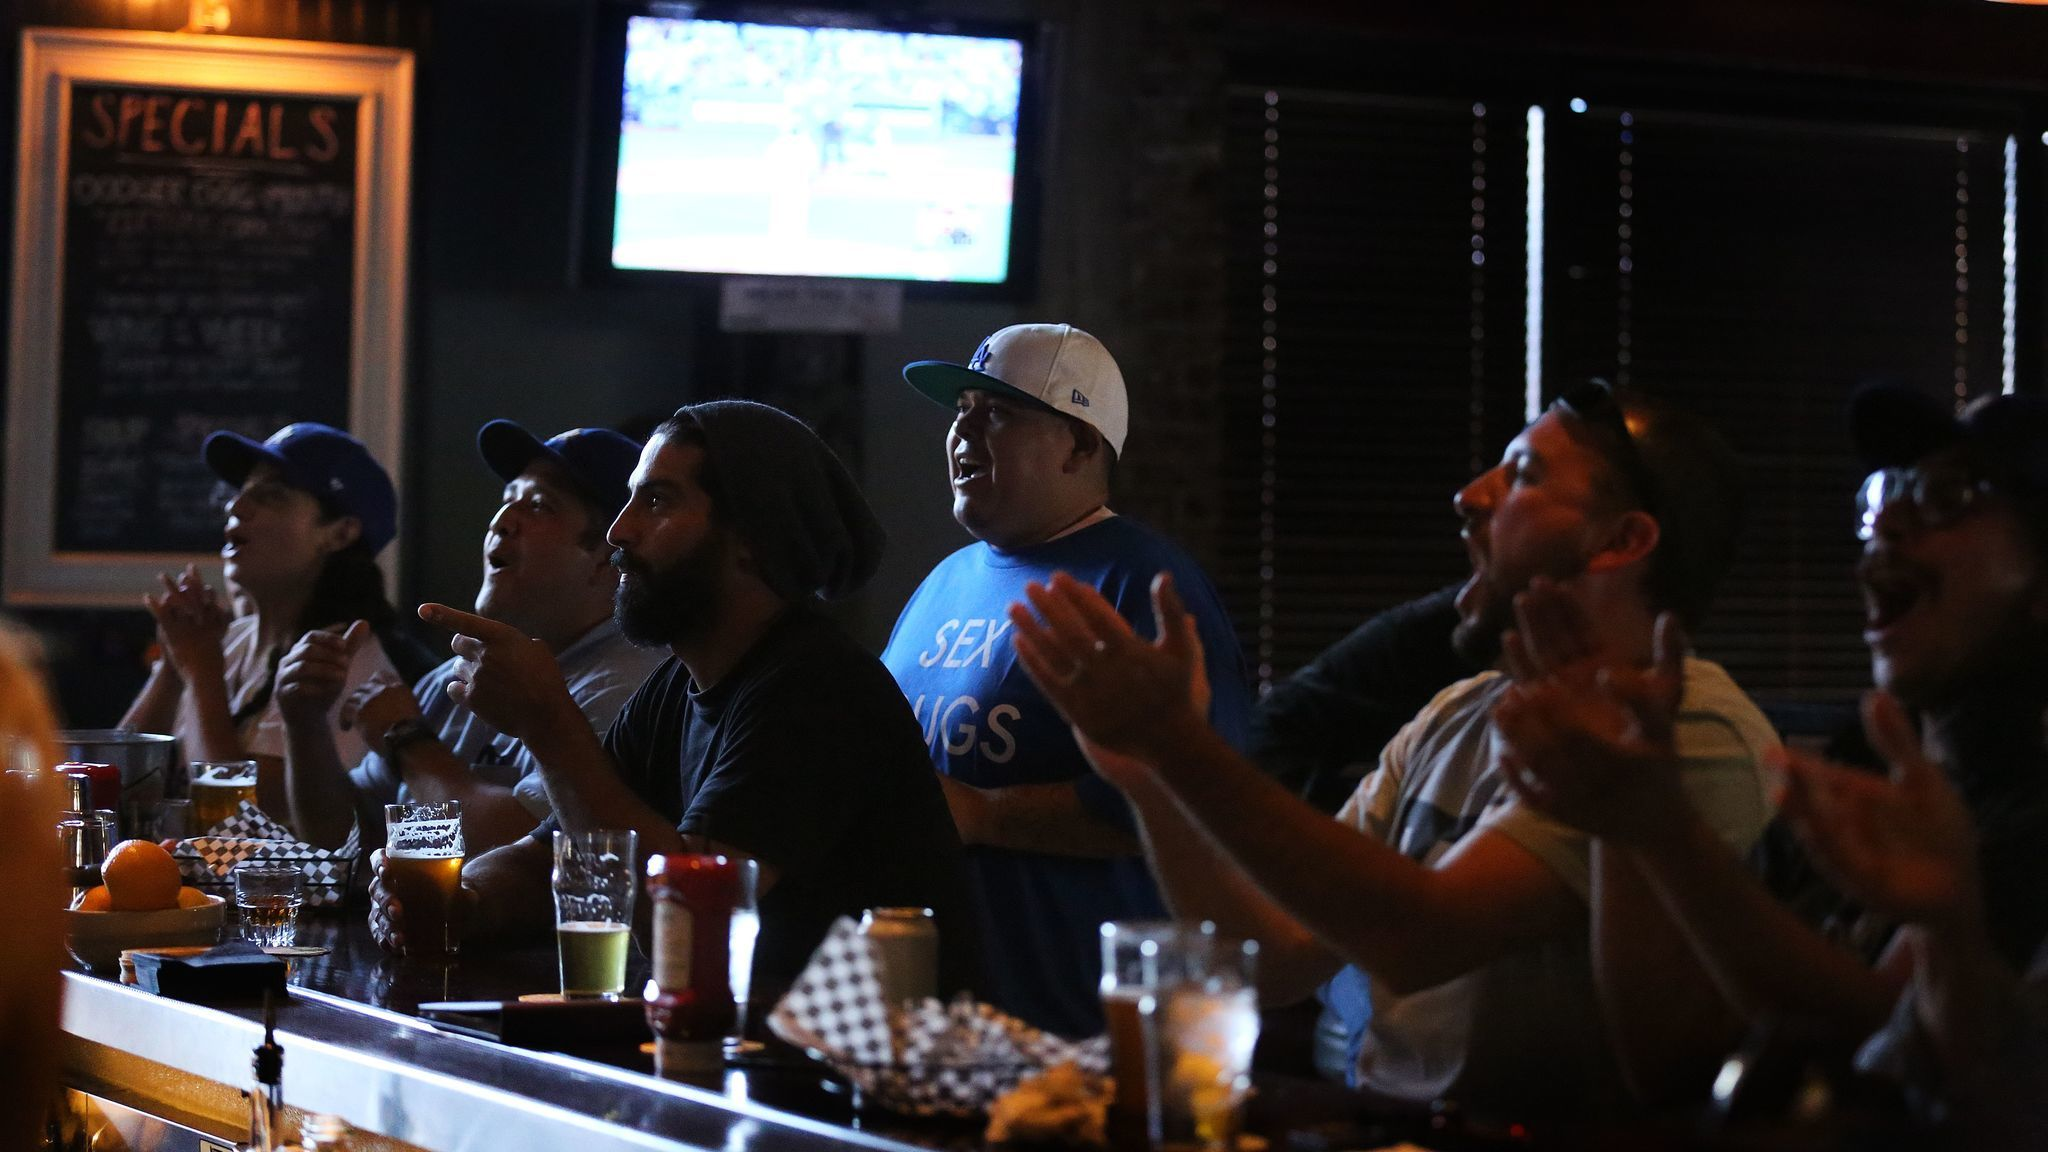 Fans enjoy a game and beers inside the Greyhound Bar & Grill in Los Angeles.